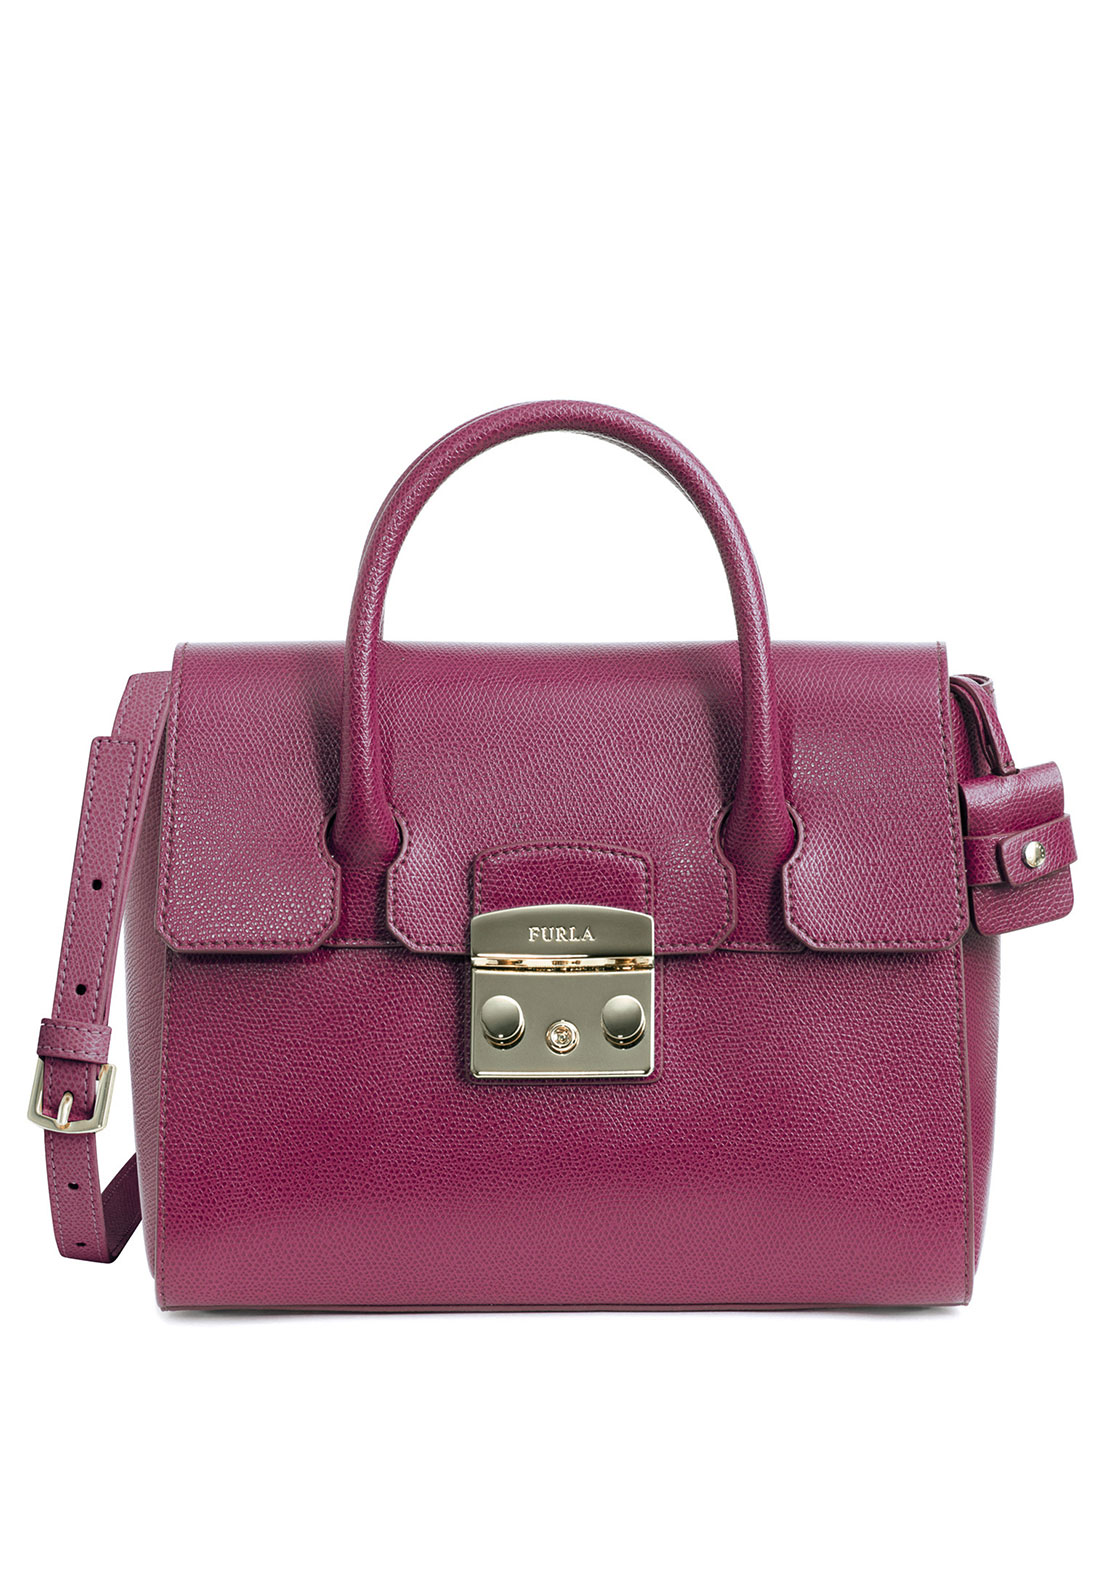 Furla Metropolis Leather Small Satchel Bag, Pink